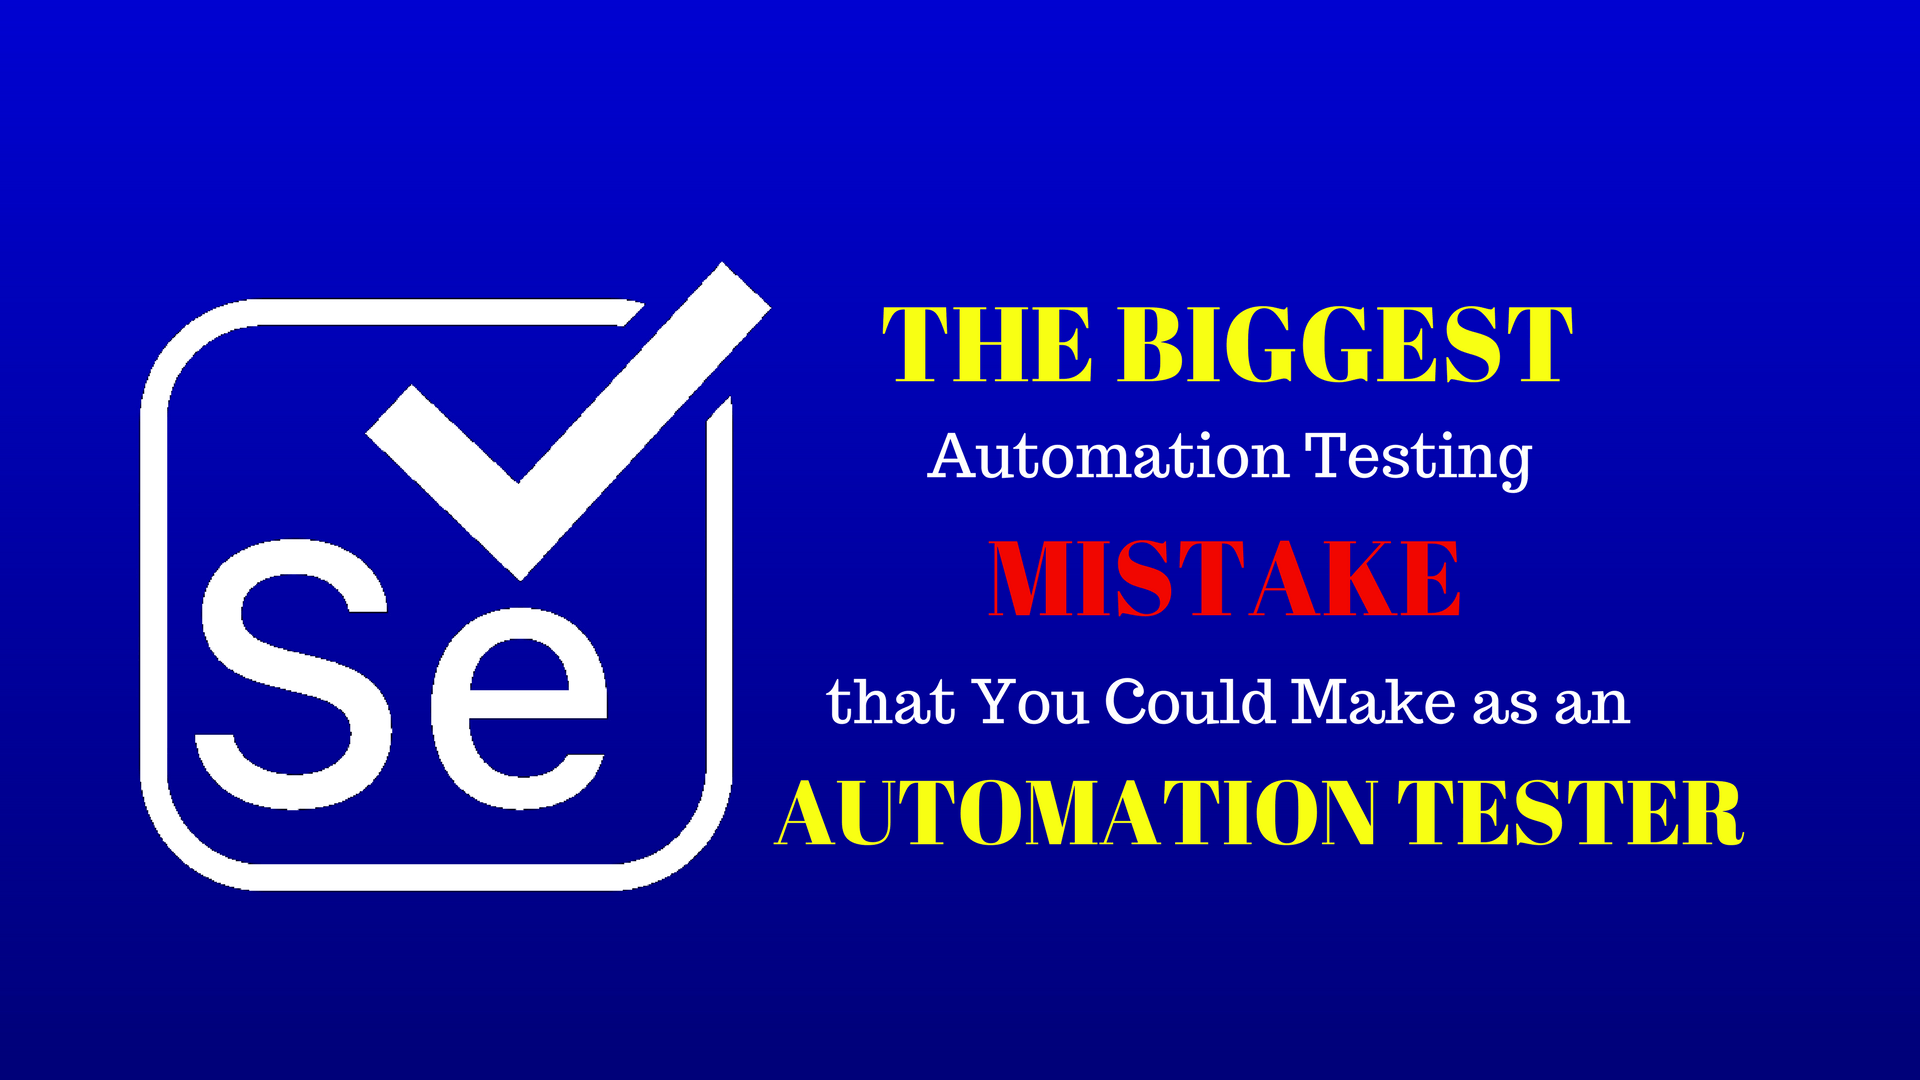 The biggest automation testing mistake that you could make baditri Gallery